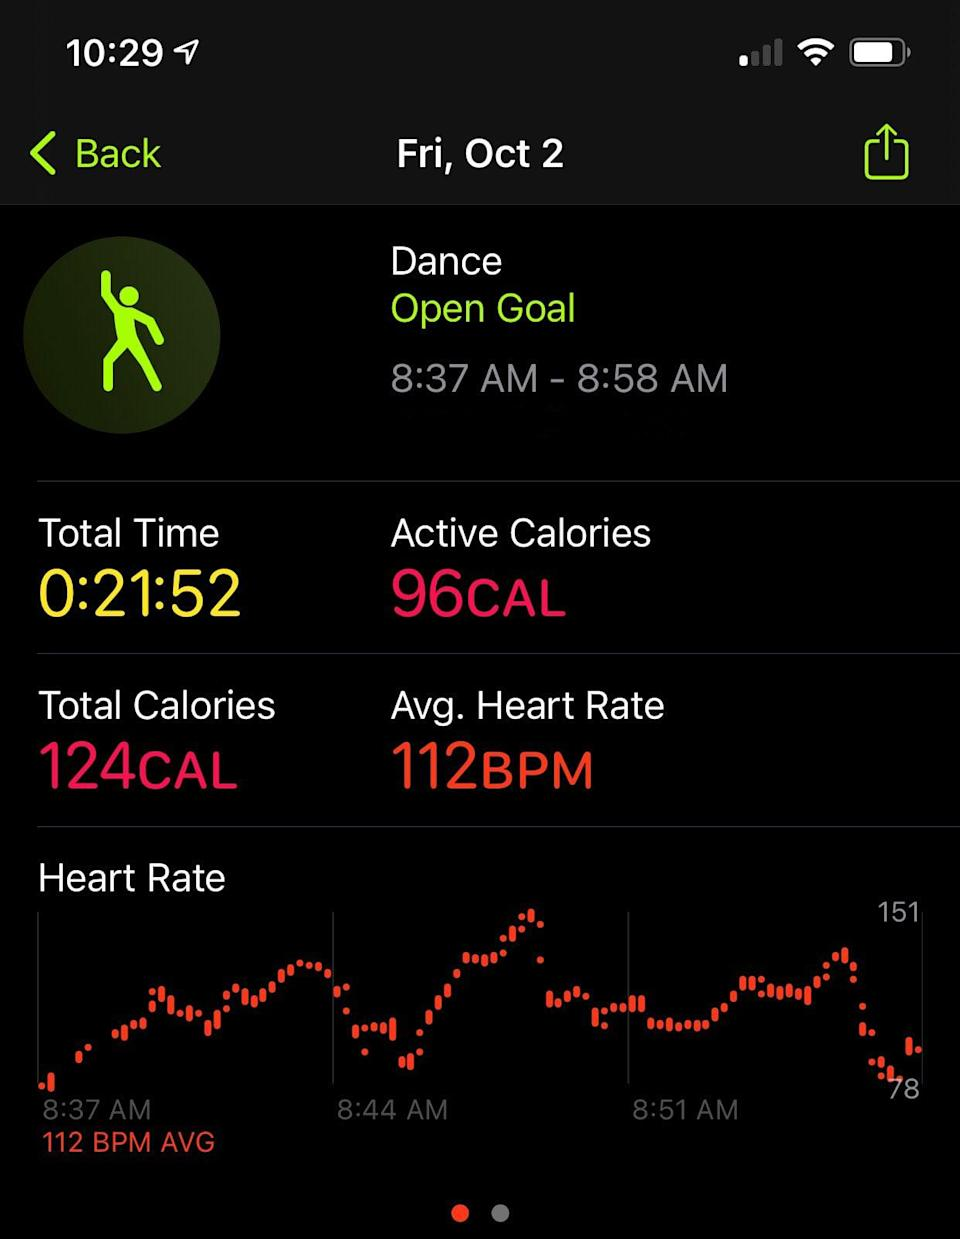 <p>Here's the overview shown on the iPhone, so you can see workout time, active and total calories, and heart rate all at once. </p> <p>If getting more accurate calorie credit for your dance workouts is important to you, you're going to love this new feature on the Apple Watch. I'm more of a runner and into strength training, so mixing it up with these dance cardio workouts was fun! It's a great workout option for cold or rainy days, and having this option to track dance workouts motivates me to do them more.</p>